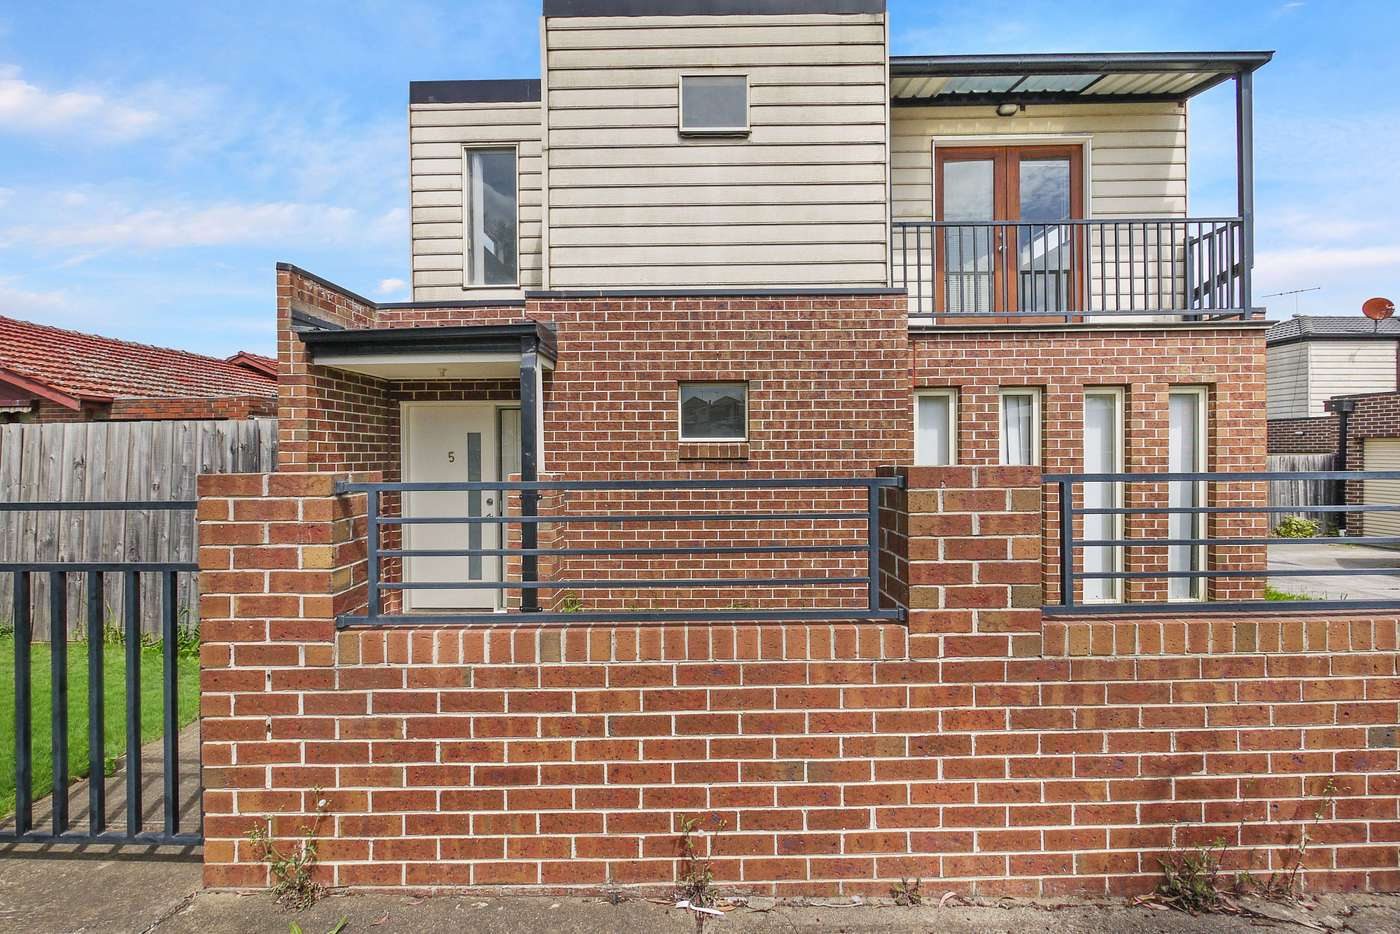 Main view of Homely townhouse listing, 5 Barwon Street, Glenroy VIC 3046